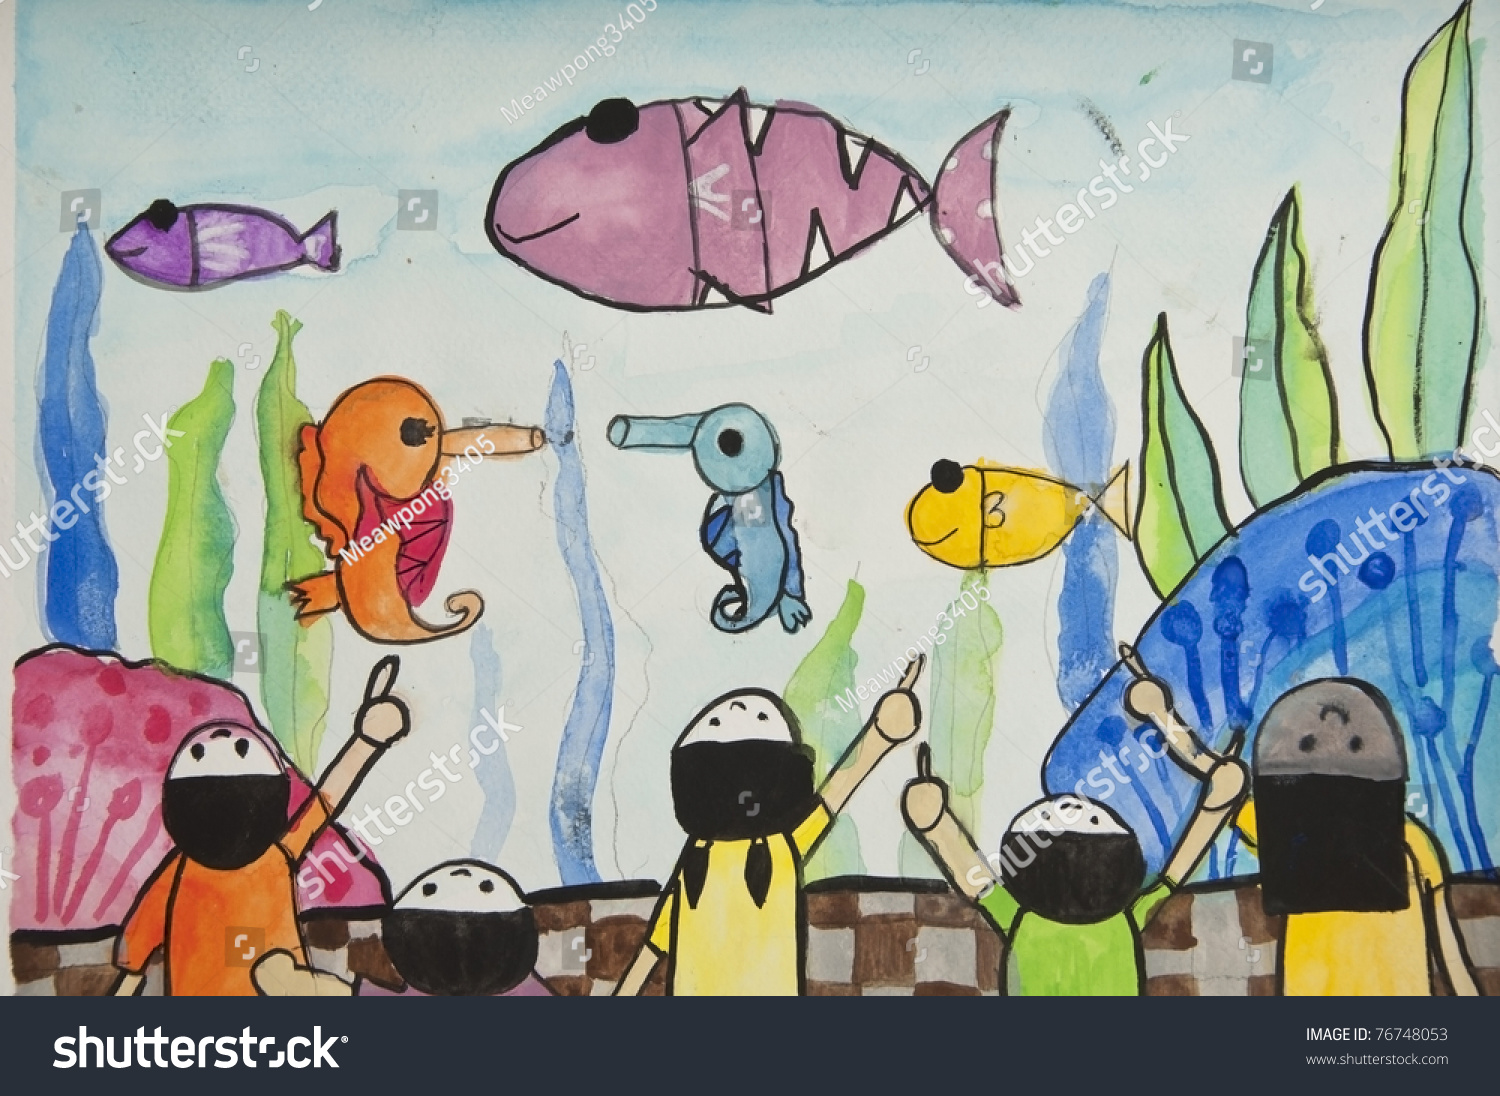 Fish tank drawing pictures - Fish In Aquarium As Free Hand Drawing By Crayon Color Techniques From 5 Years Old Thai